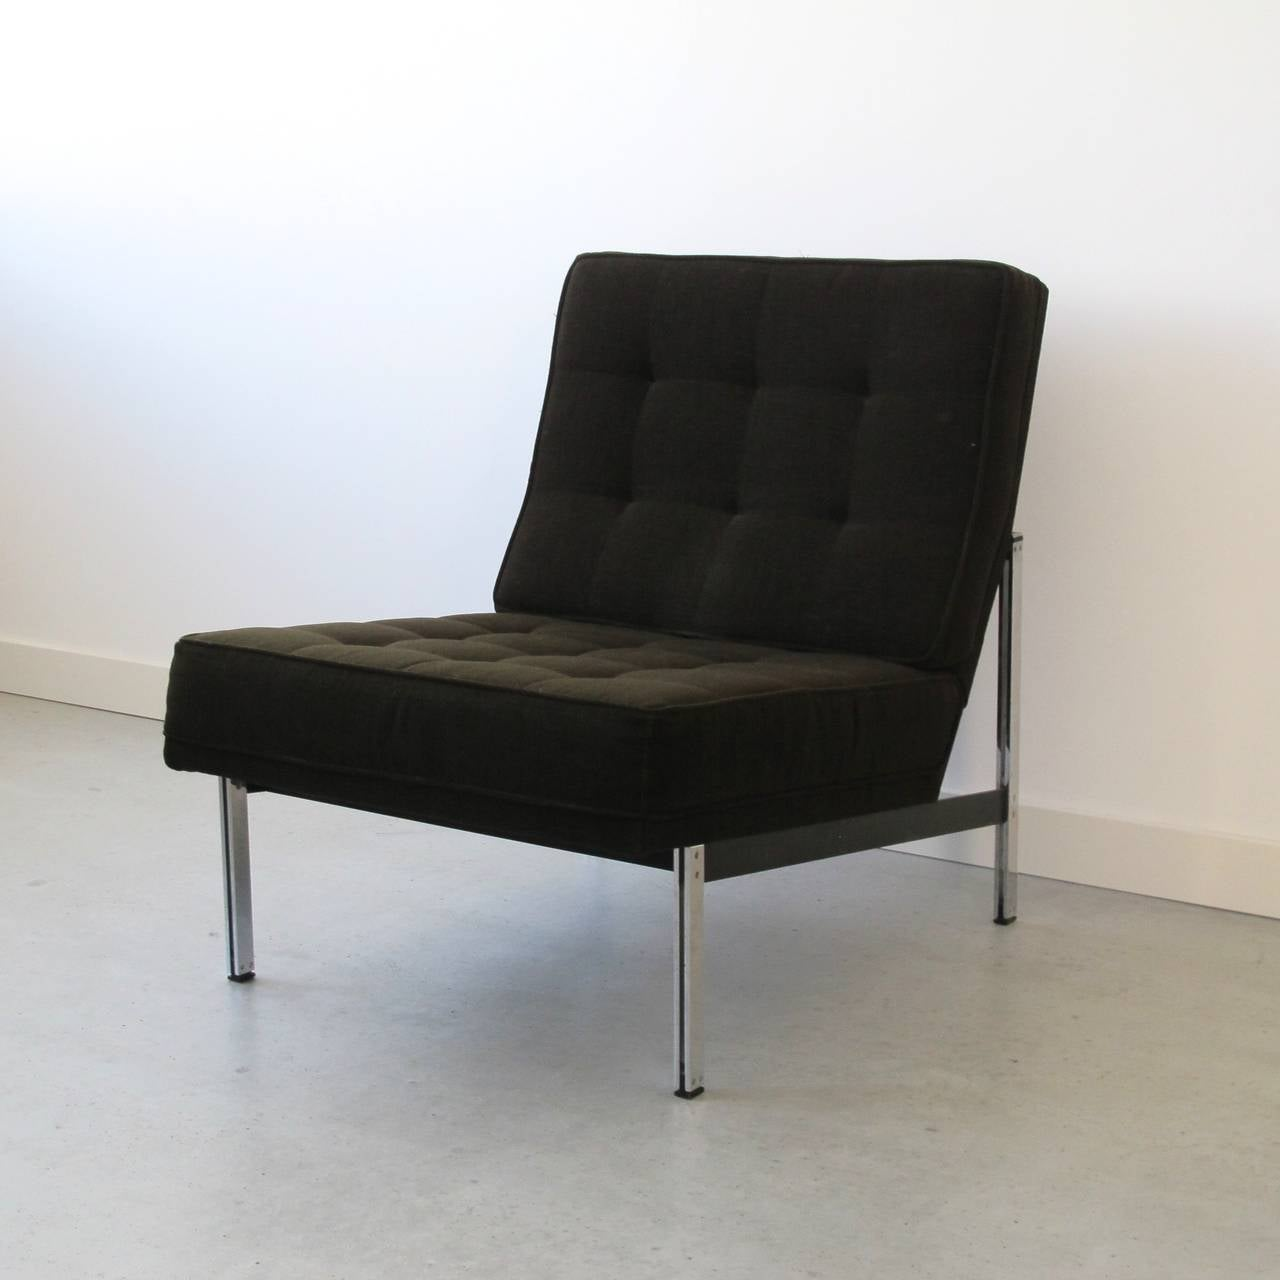 Lacquered Pair of Parallel Bar Lounge Chairs by Florence Knoll, circa 1955